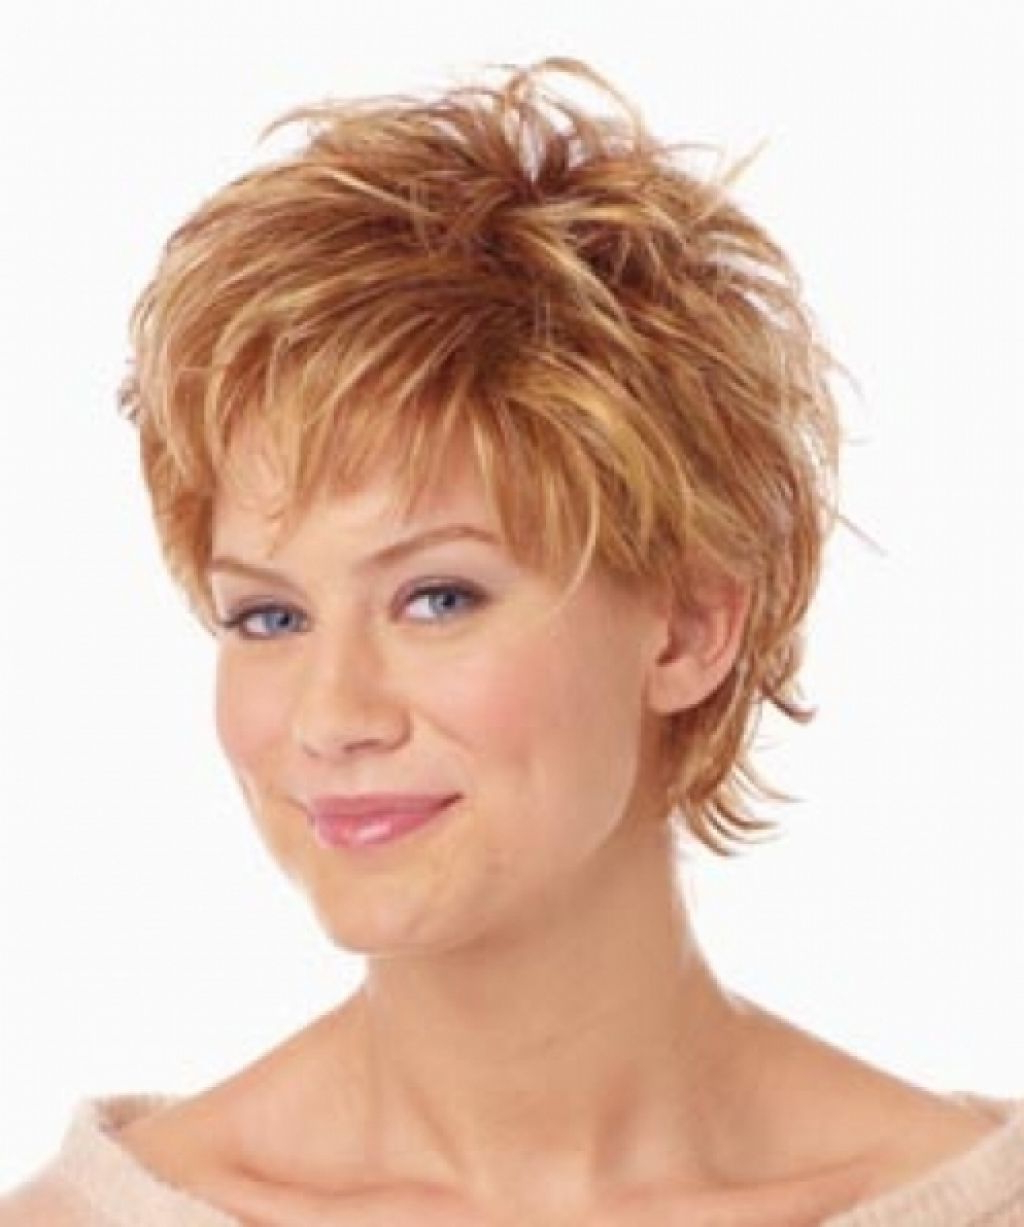 Short Hairstyle For Mature Women | Fashion | Pinterest | Short Within Mature Short Hairstyles (View 24 of 25)